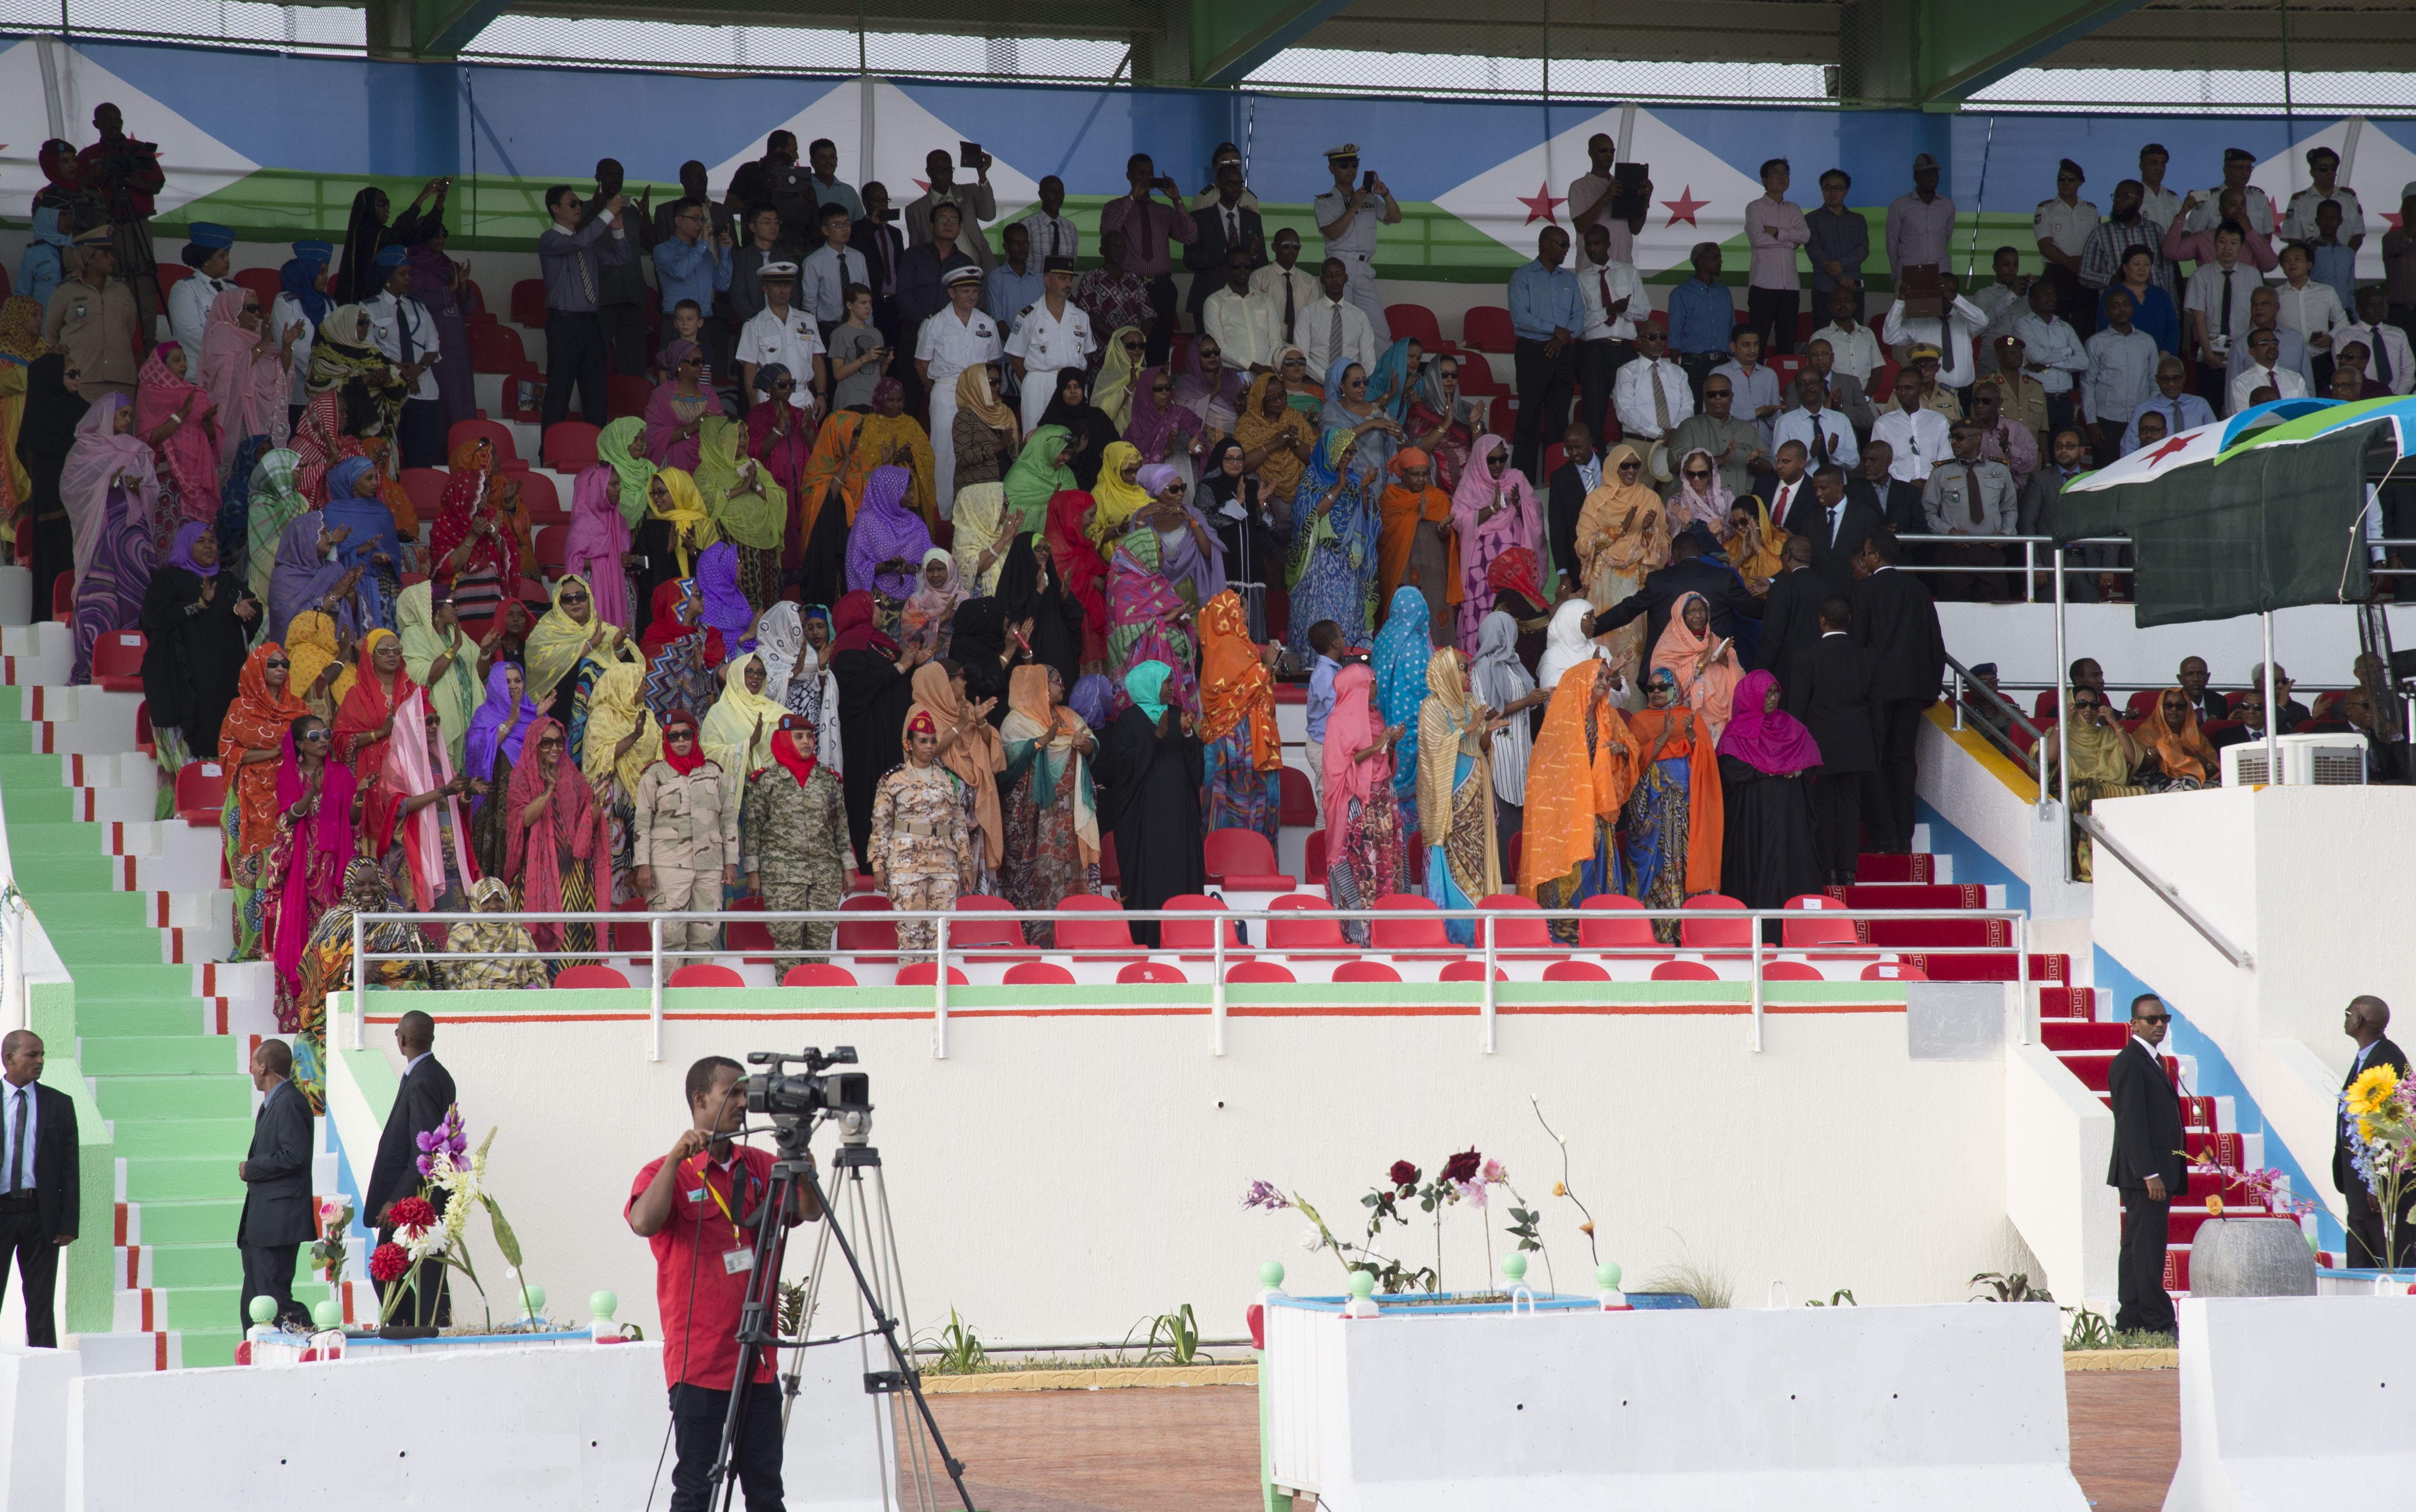 Audience members clap and repeat cadences while watching the Djibouti Independence Day parade June 27, 2016, at Djibouti. Thousands of Djiboutian citizens came to the event to watch the demonstrations by the Djiboutian military and law enforcement. (U.S. Air Force photo by Staff Sgt. Eric Summers Jr.)